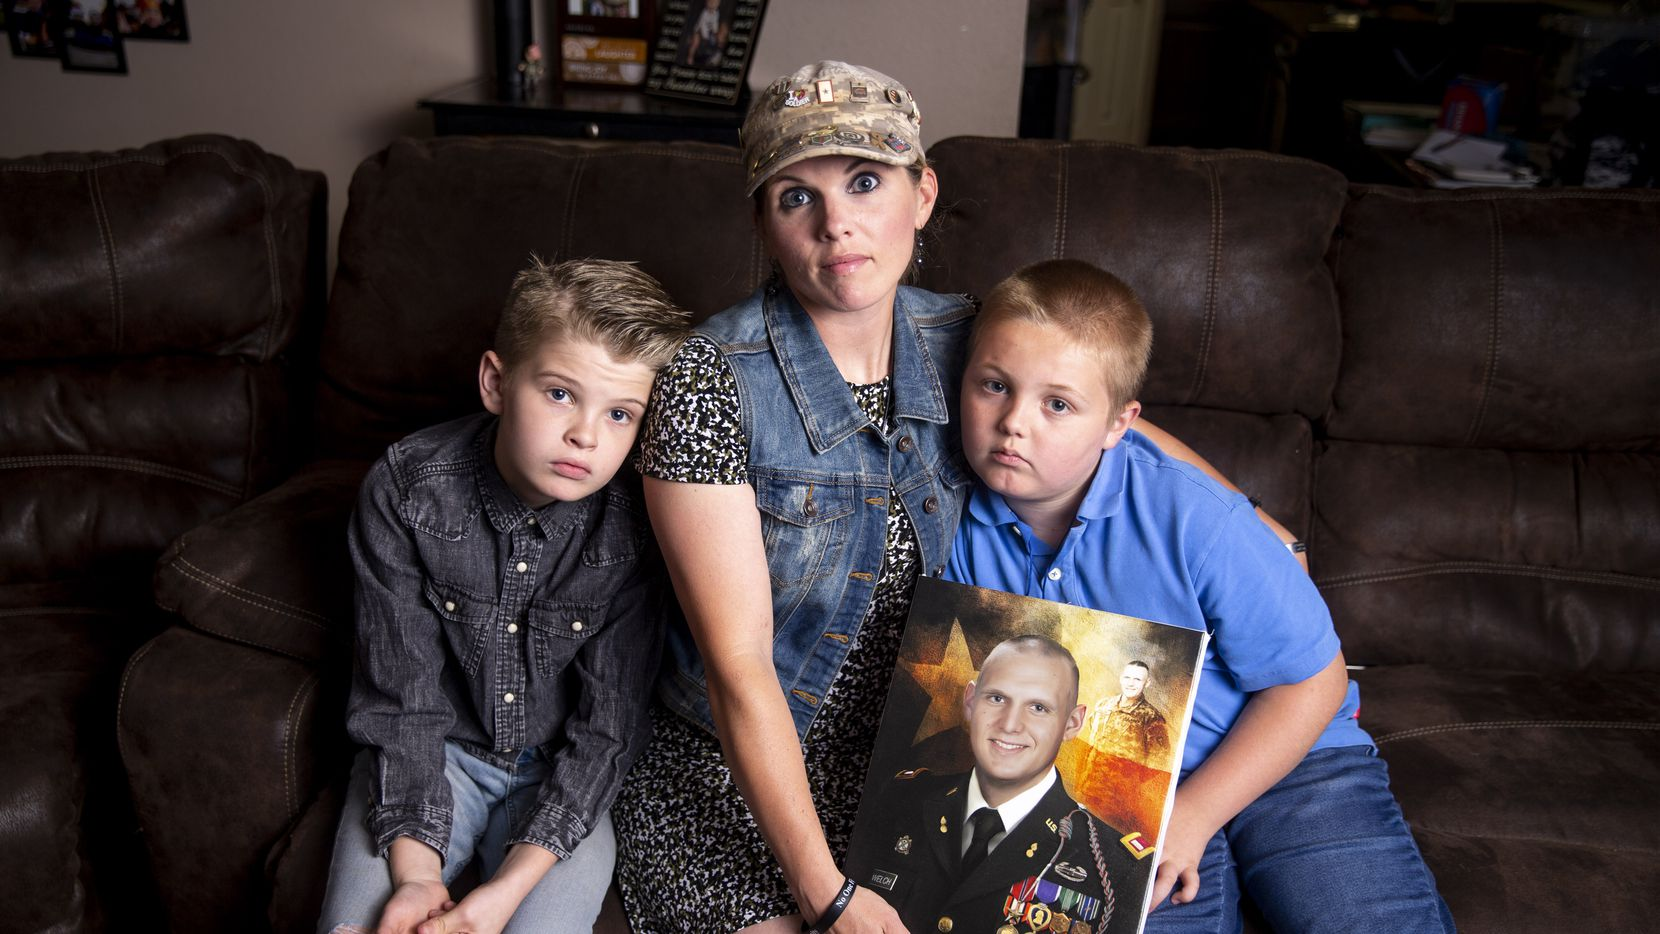 Becky Welch poses with her sons Aaden Welch, 11, left, and Robby Welch, 9, with a portrait of Army 1st Lt. Robert Welch, in their Wylie, Texas home Friday, May 31, 2019. A provision in the 2017 tax overhaul caused the Welch family's tax bill to increase.